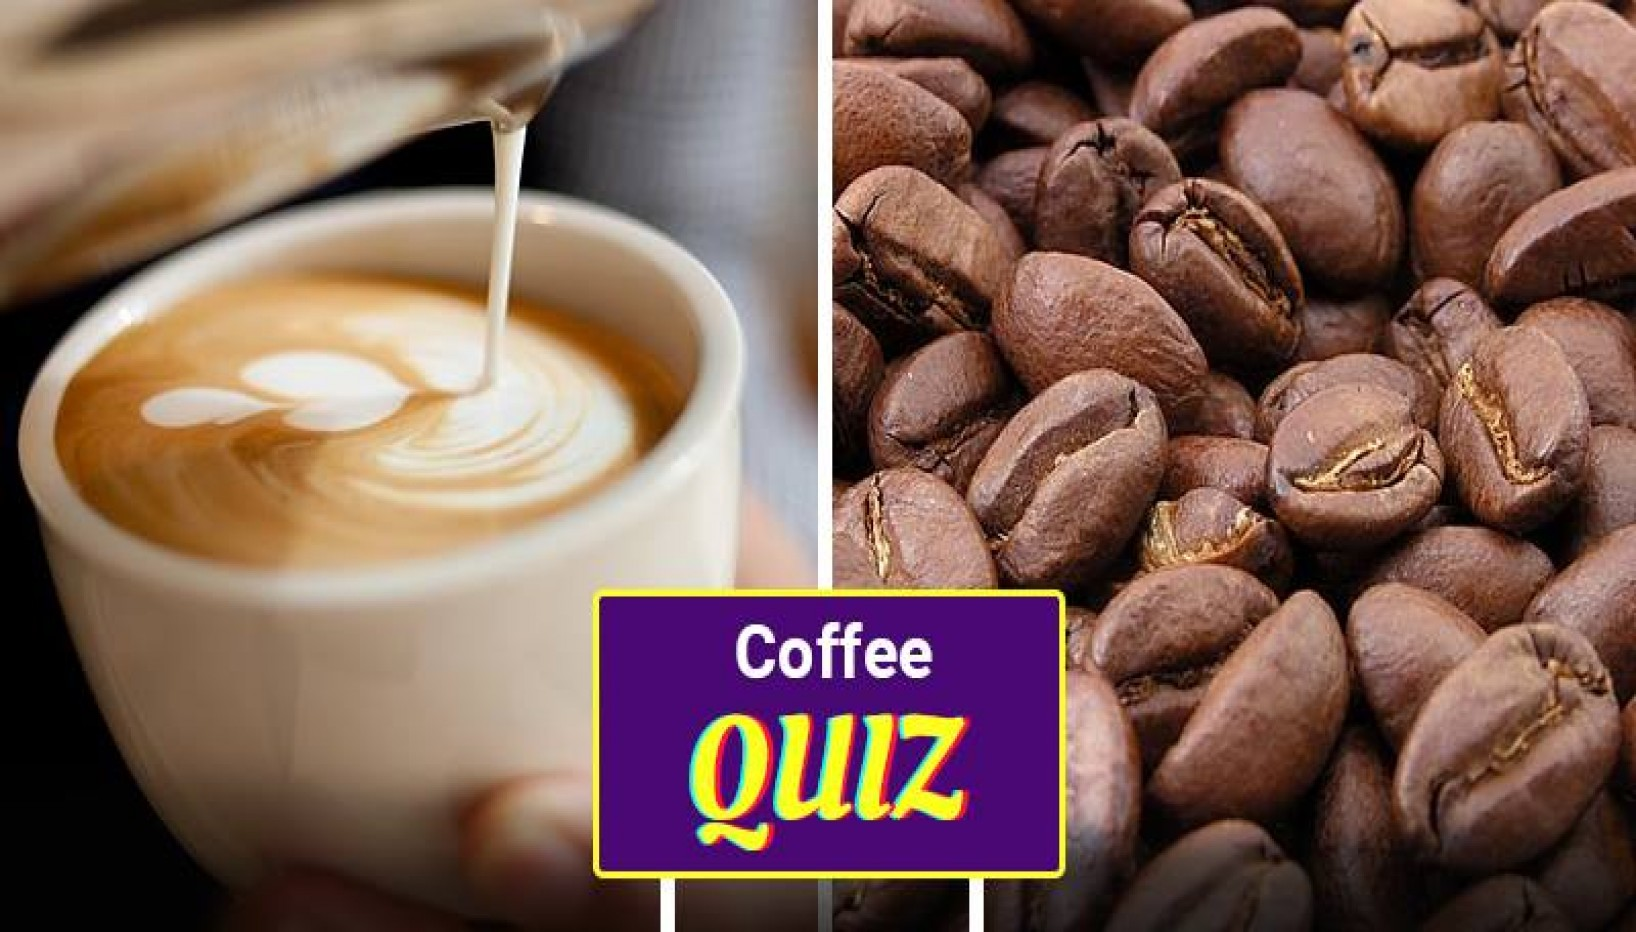 Only A True Coffee Connoisseur Can Score A 10/10 On This Quiz!